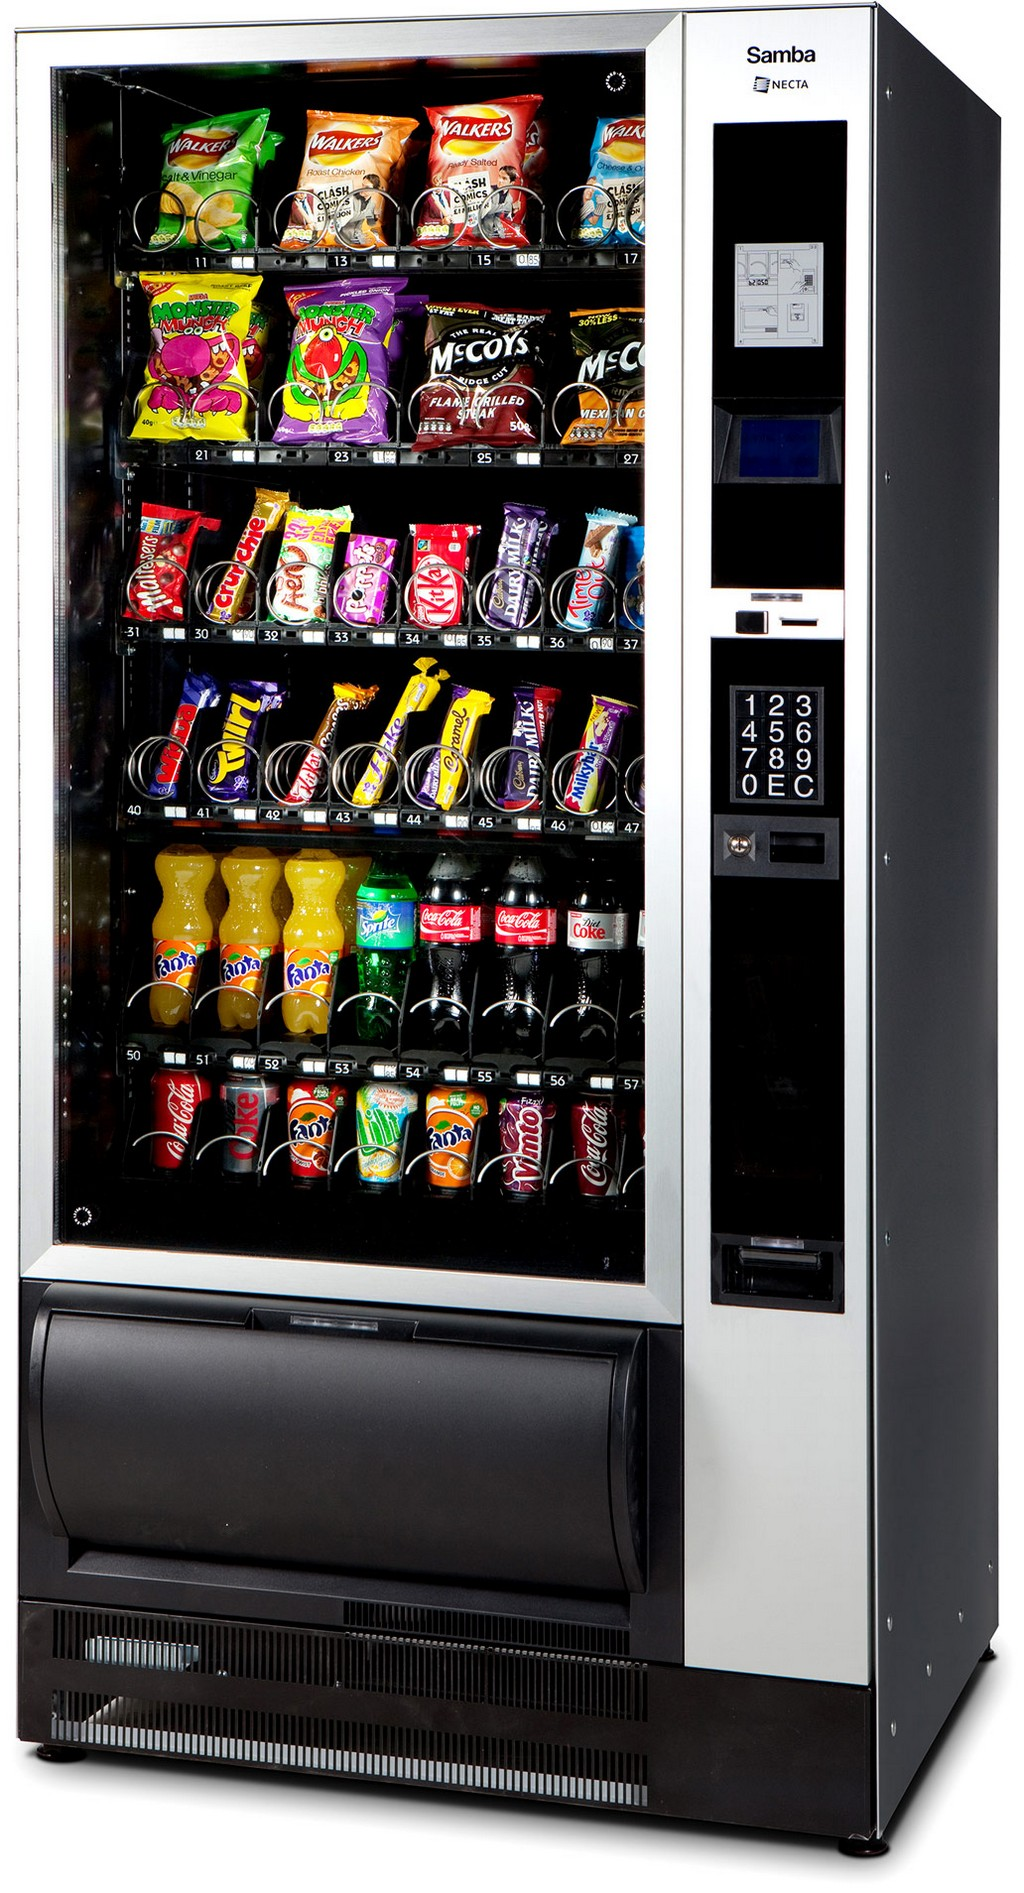 frozen food vending machine, vending machine service, vending machine uk